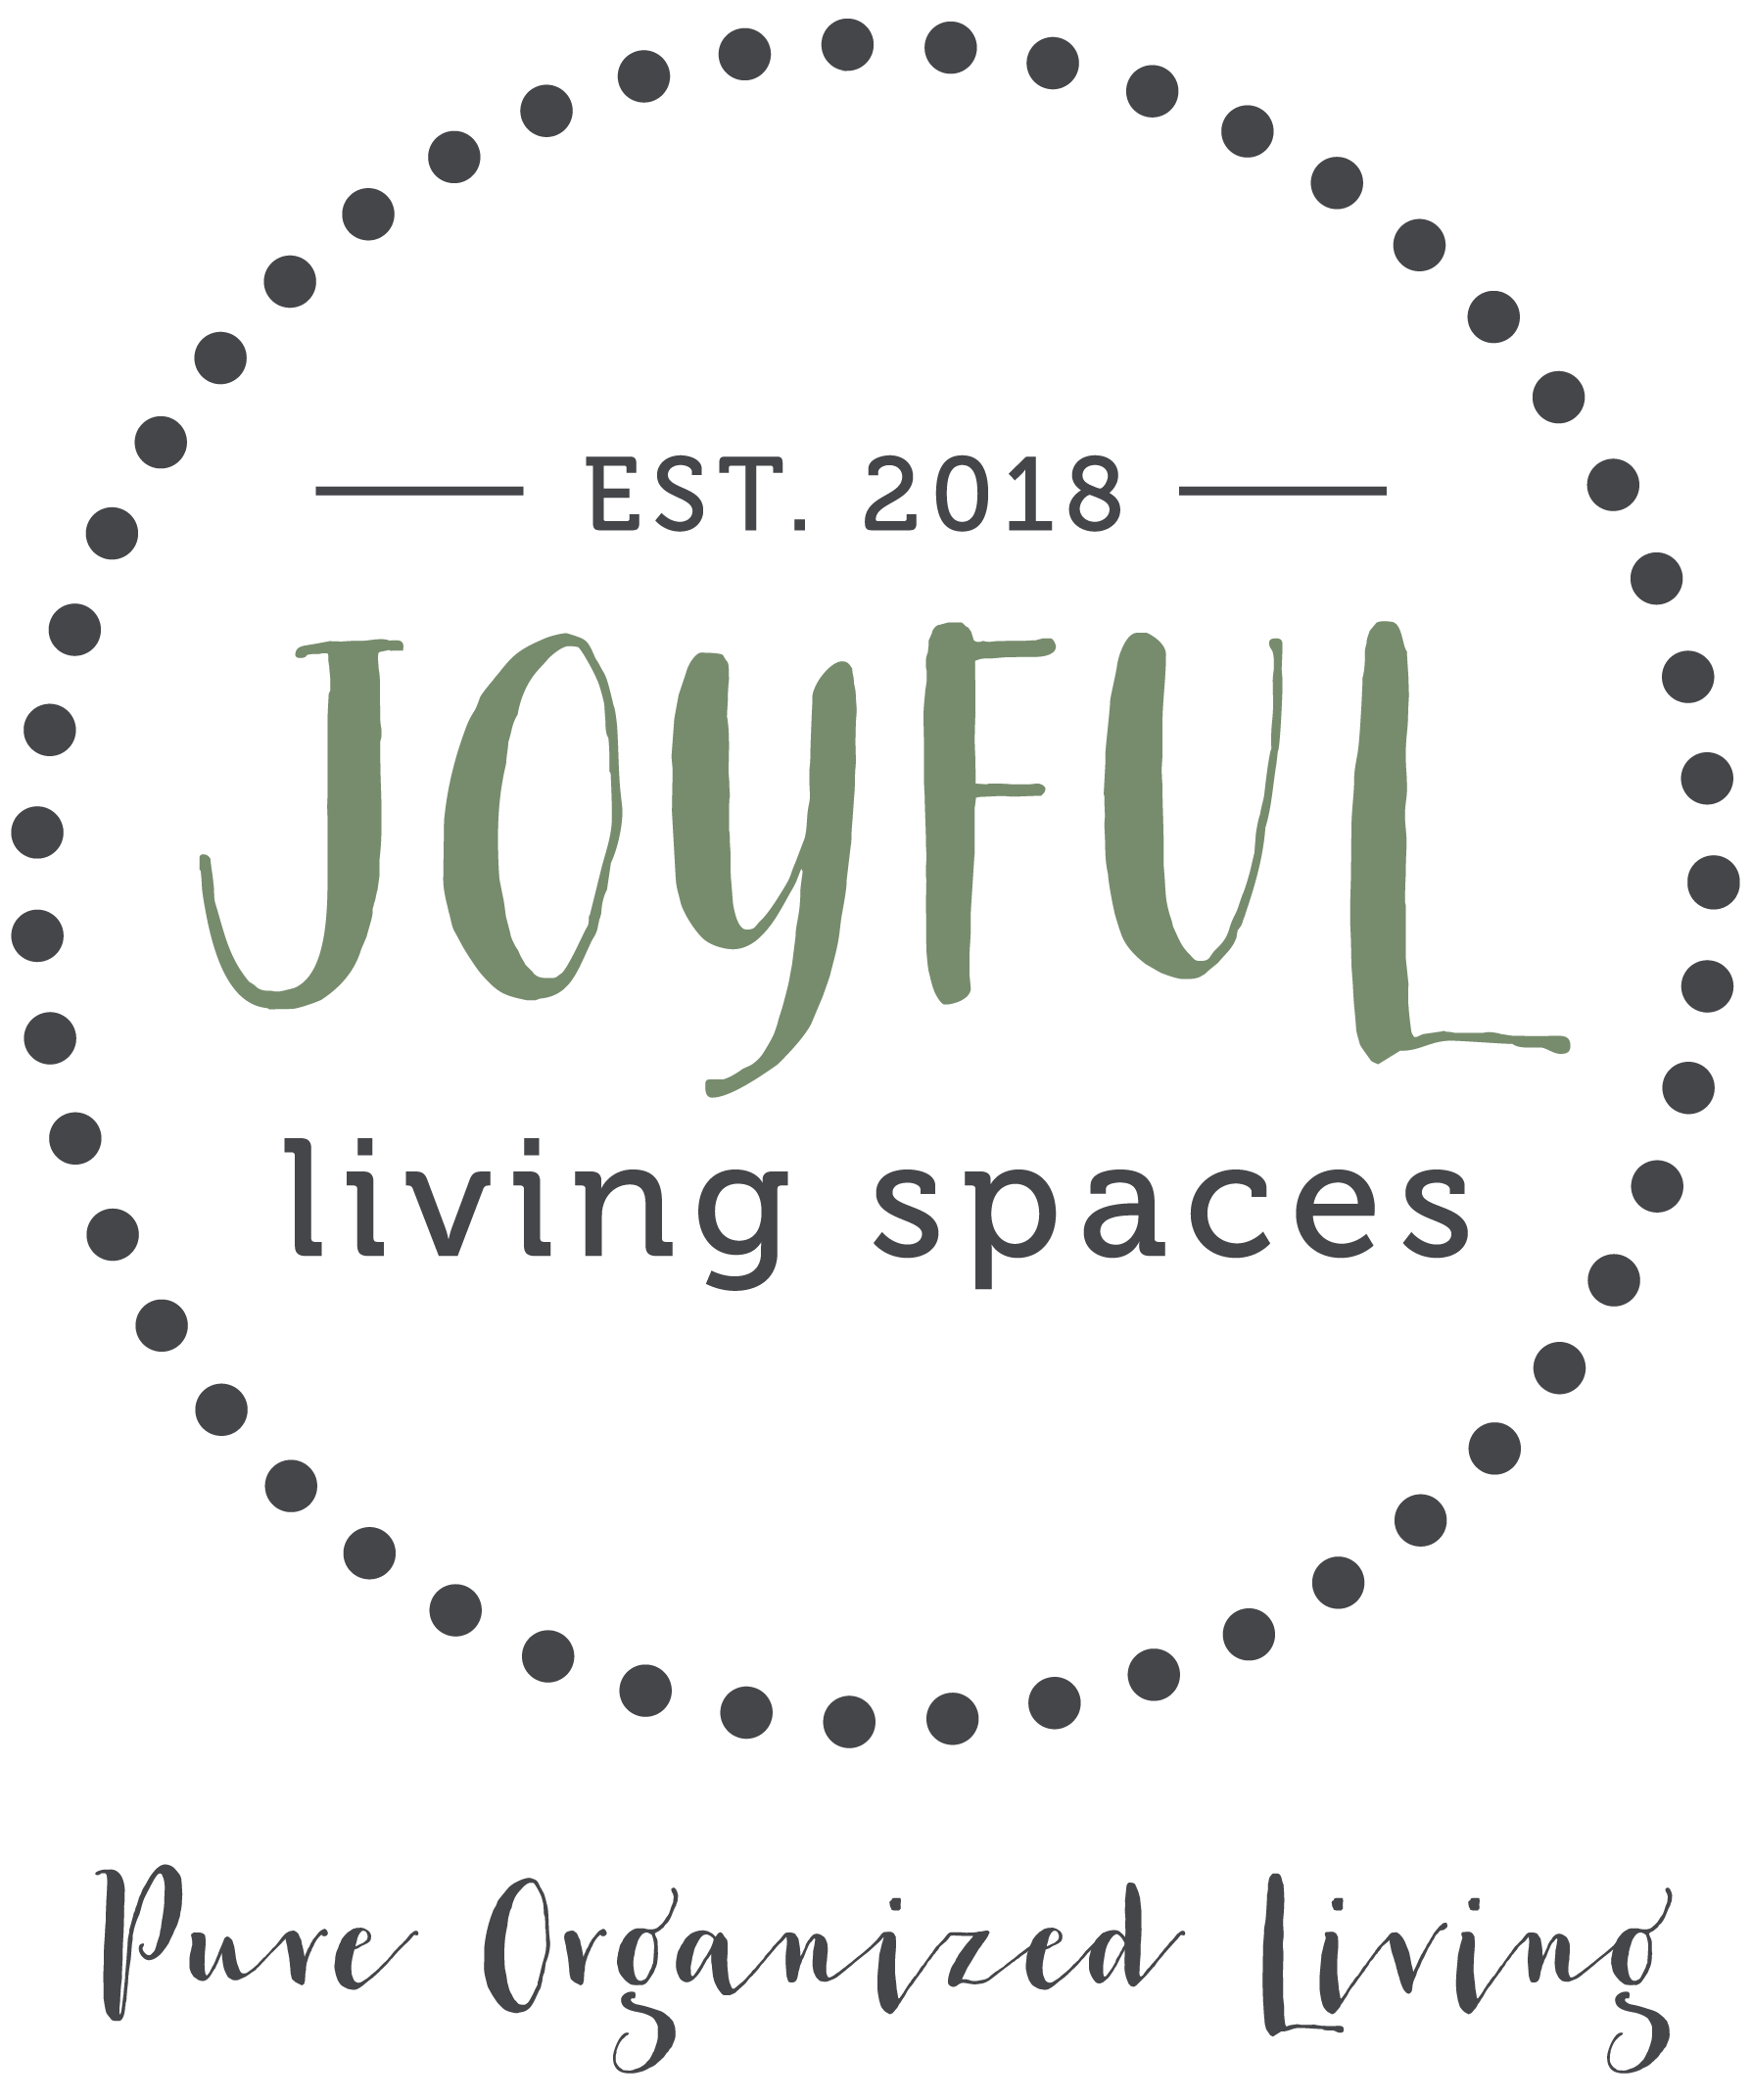 Joyful Living Spaces